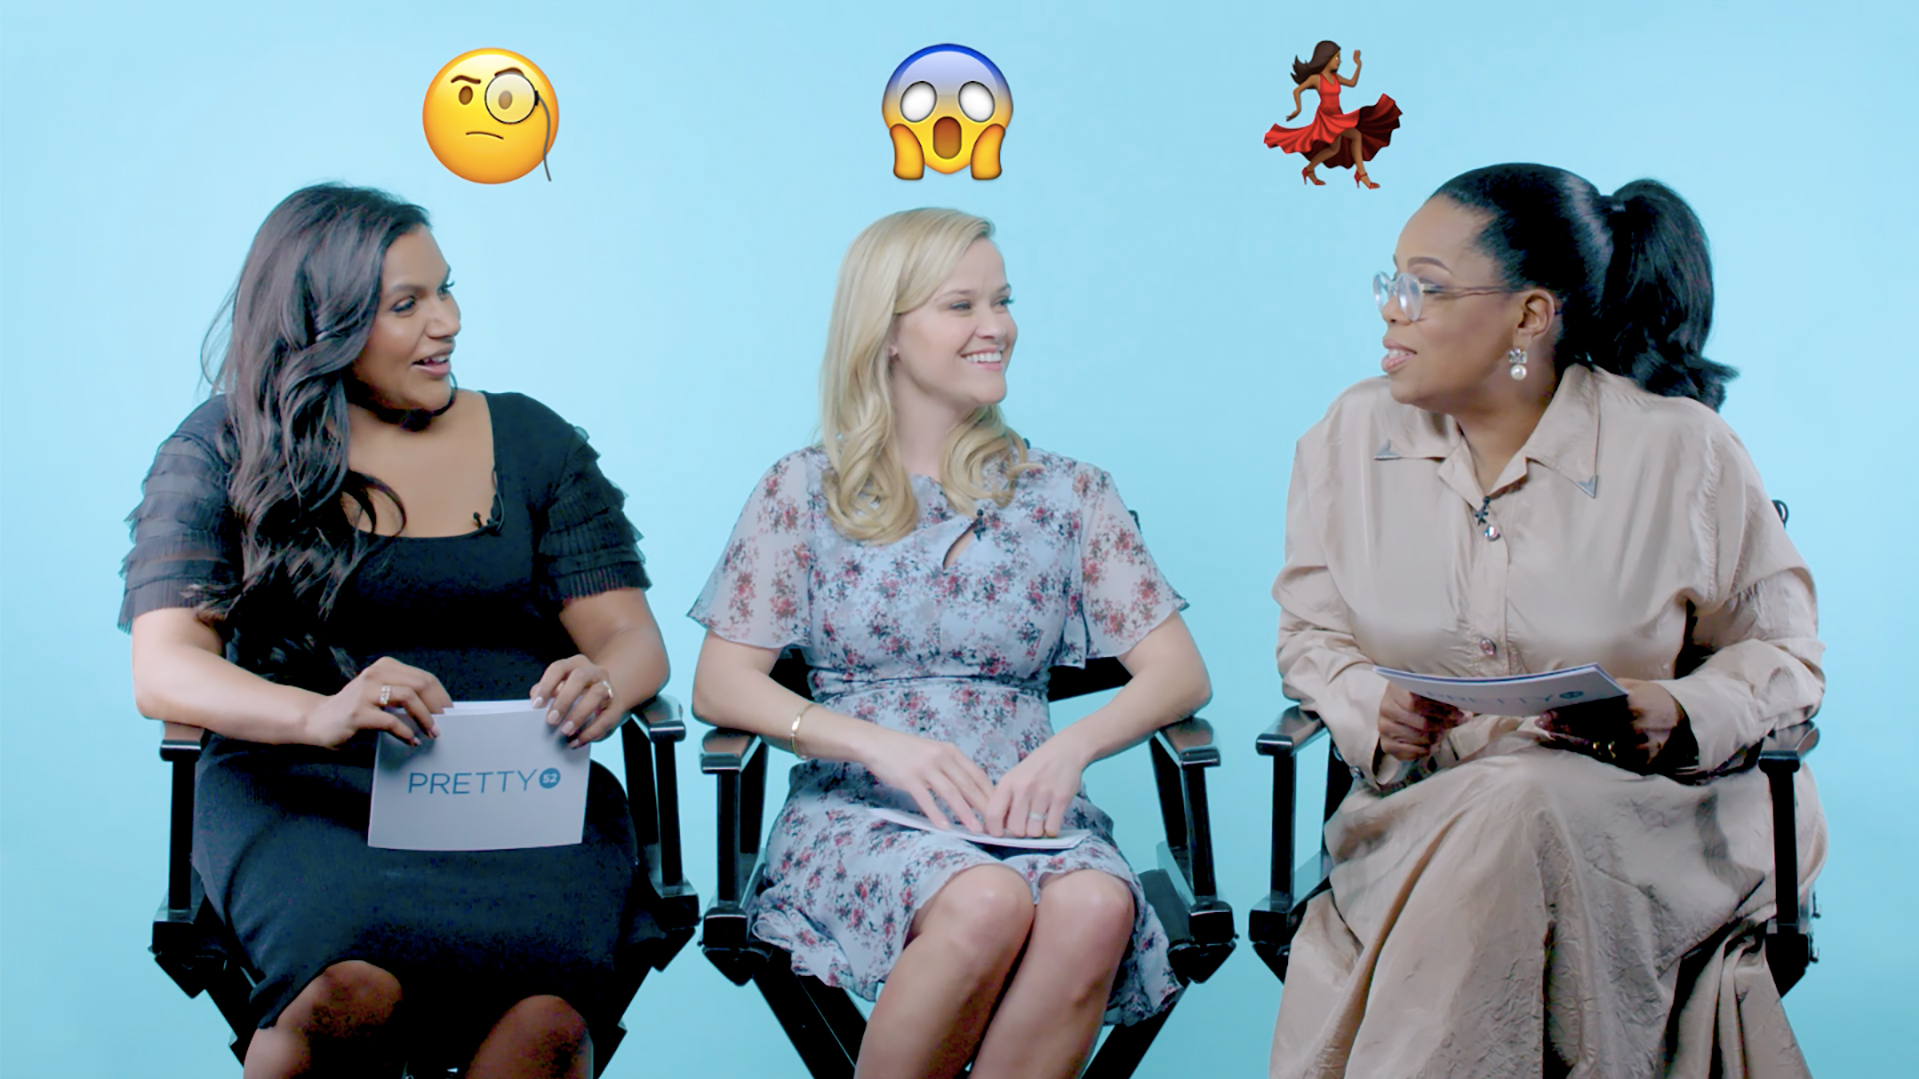 Oprah Winfrey, Reese Witherspoon And Mindy Kaling Play PRETTY52's 'Quickfire'